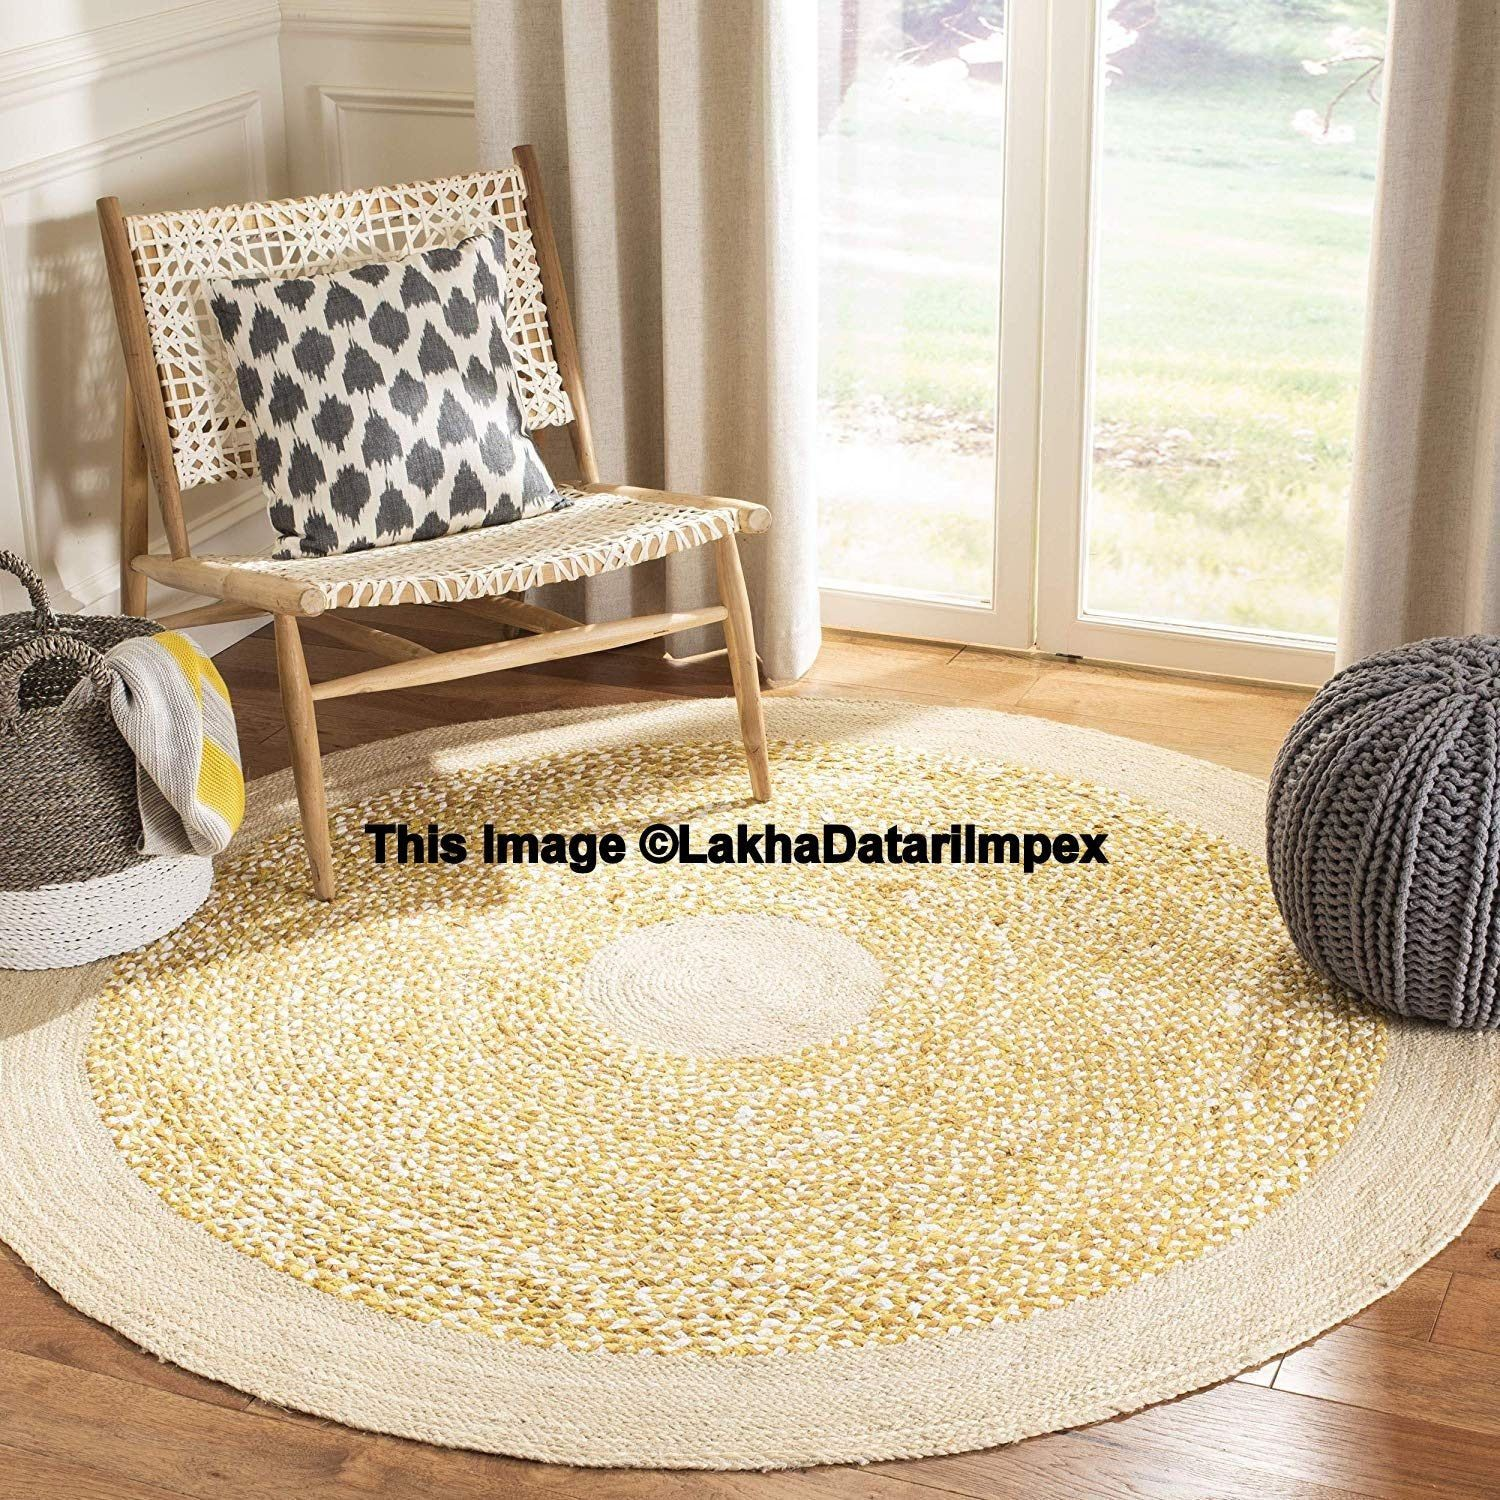 Rag Rug Braided Round Rug Meditation Mat Mandala Rug Bohemian Decor Colourful Area Rug Circle Rug Ornament Rug Meditation Mat 9x9 Area Rug Decor Modern Round Rugs Jute Round Rug